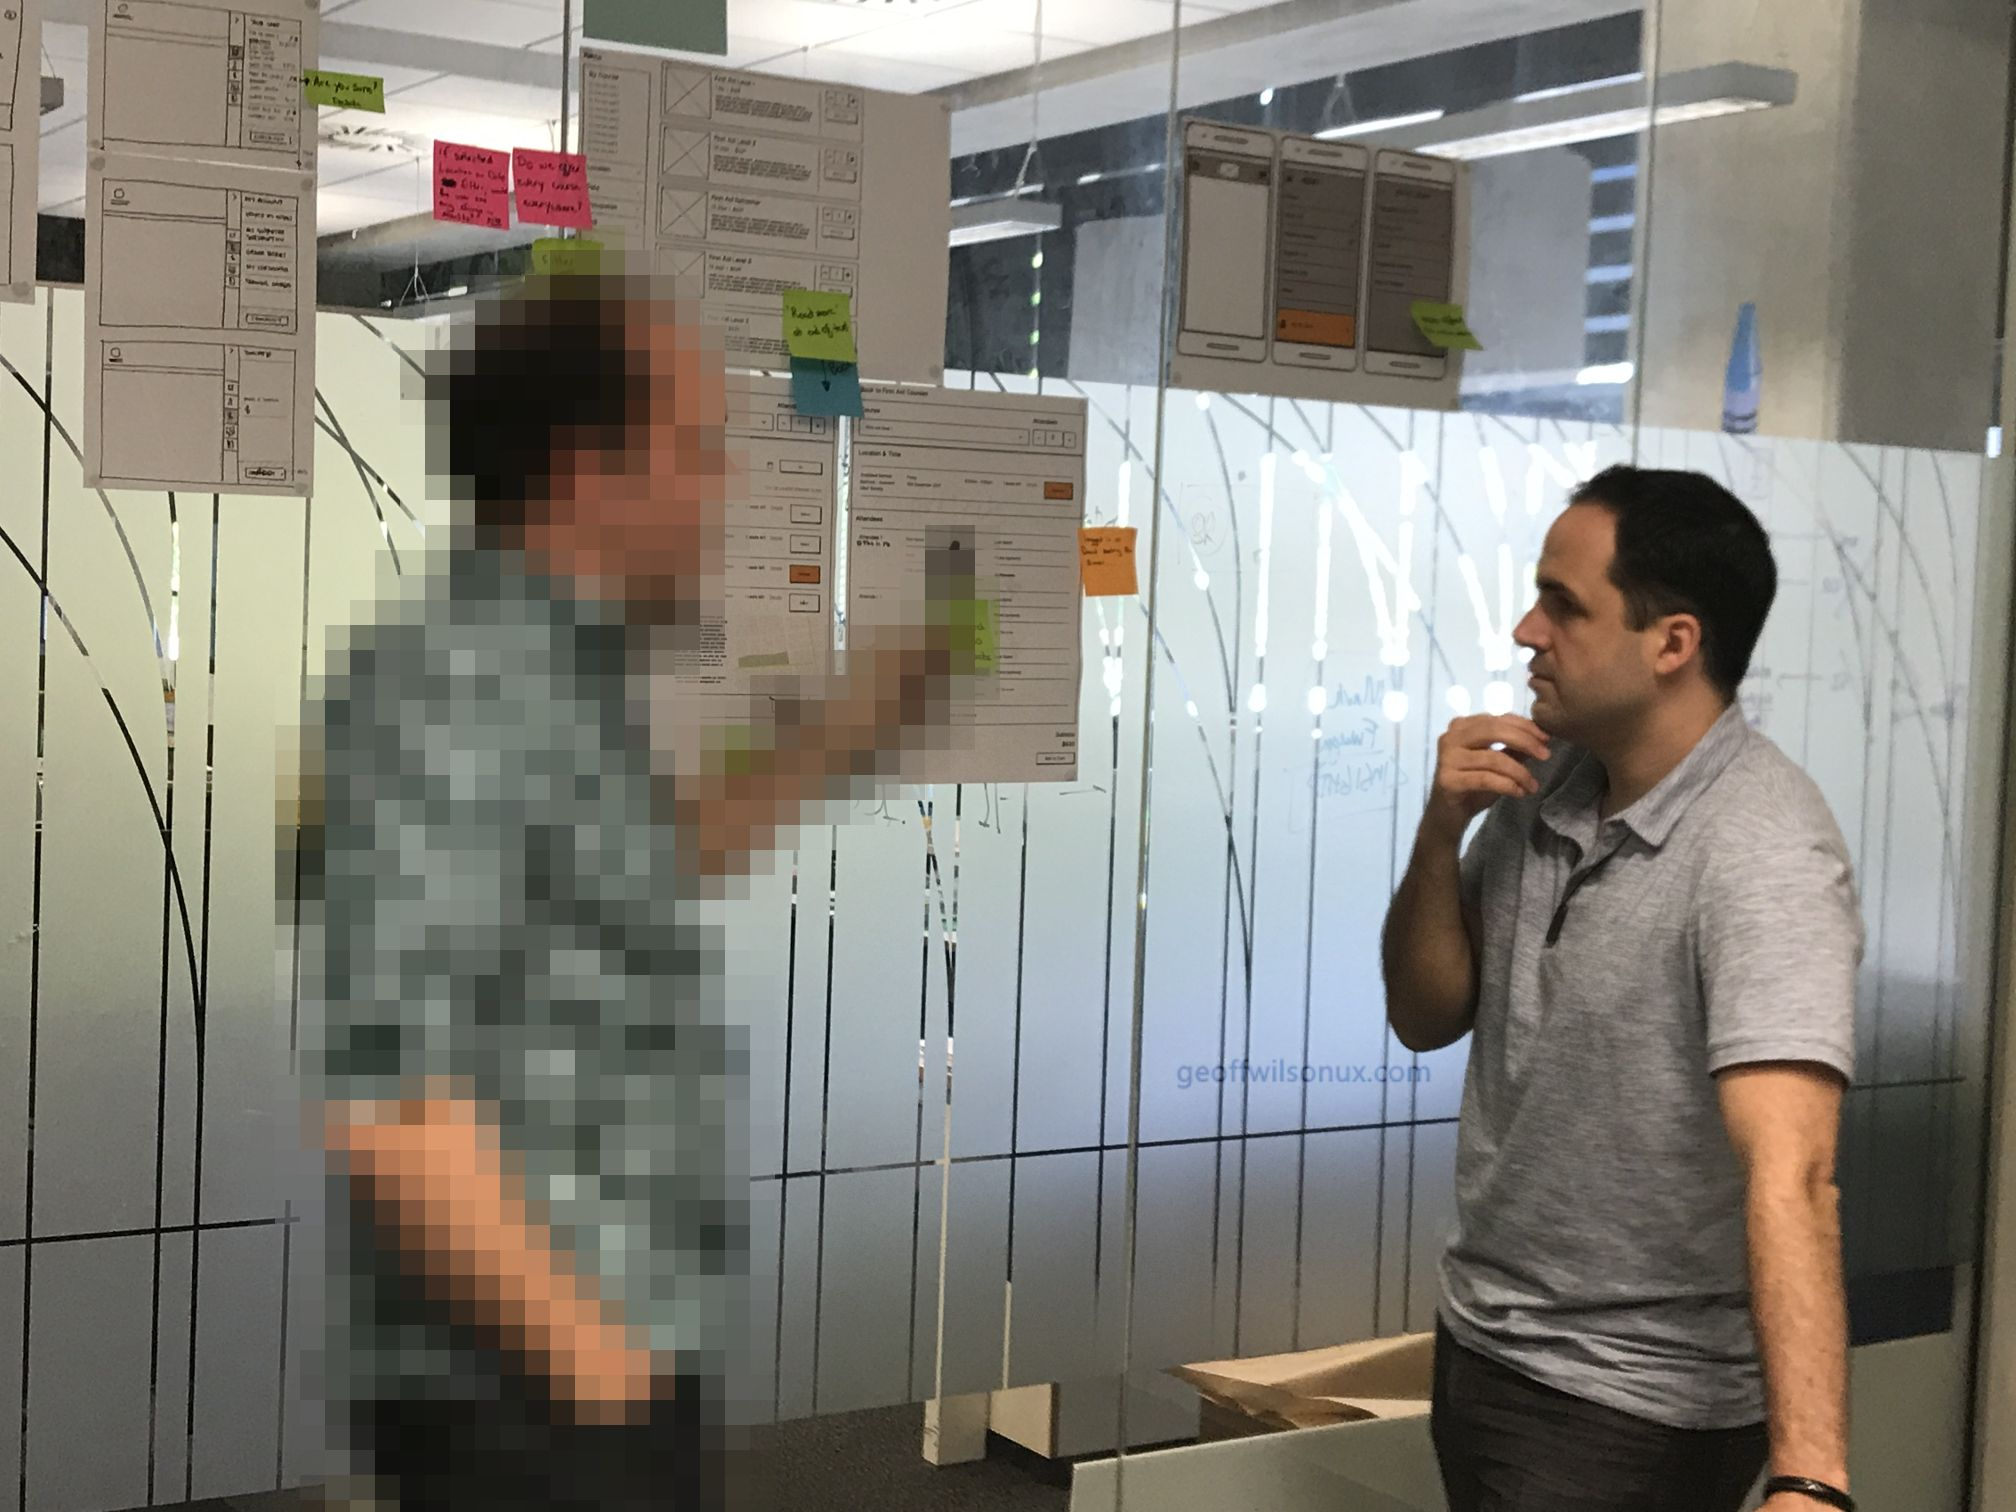 In Dec 2017, we brought onboard a UI design and development vendor to work us to make what started as my mockups and story maps a reality. While they took the lead on our first week-long design sprint since that was their speciality as a design agency, I oversaw each design that was being generated as our in-house design lead to ensure that the outcomes met our customer-centric principles, ideal journeys, and would be adaptable going forward. I also had to ensure that we would have an equally effective, efficient, and satisfactory mobile experience as our digital manager had shown our overall web traffic being ever-increasingly converted to mobile devices.